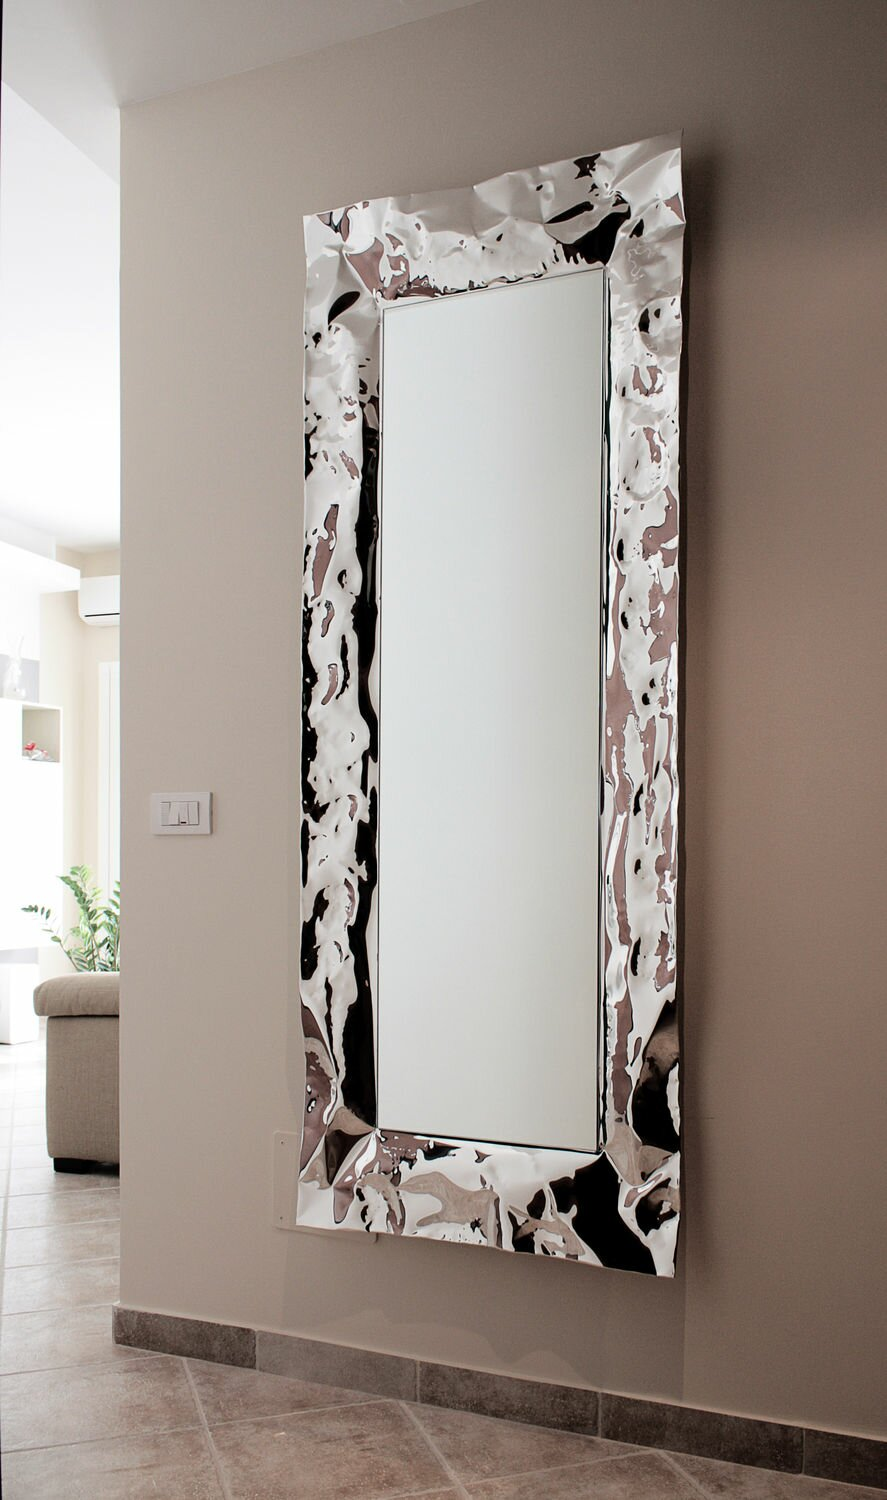 15 beautiful wall mirror designs mostbeautifulthings for Mirror design